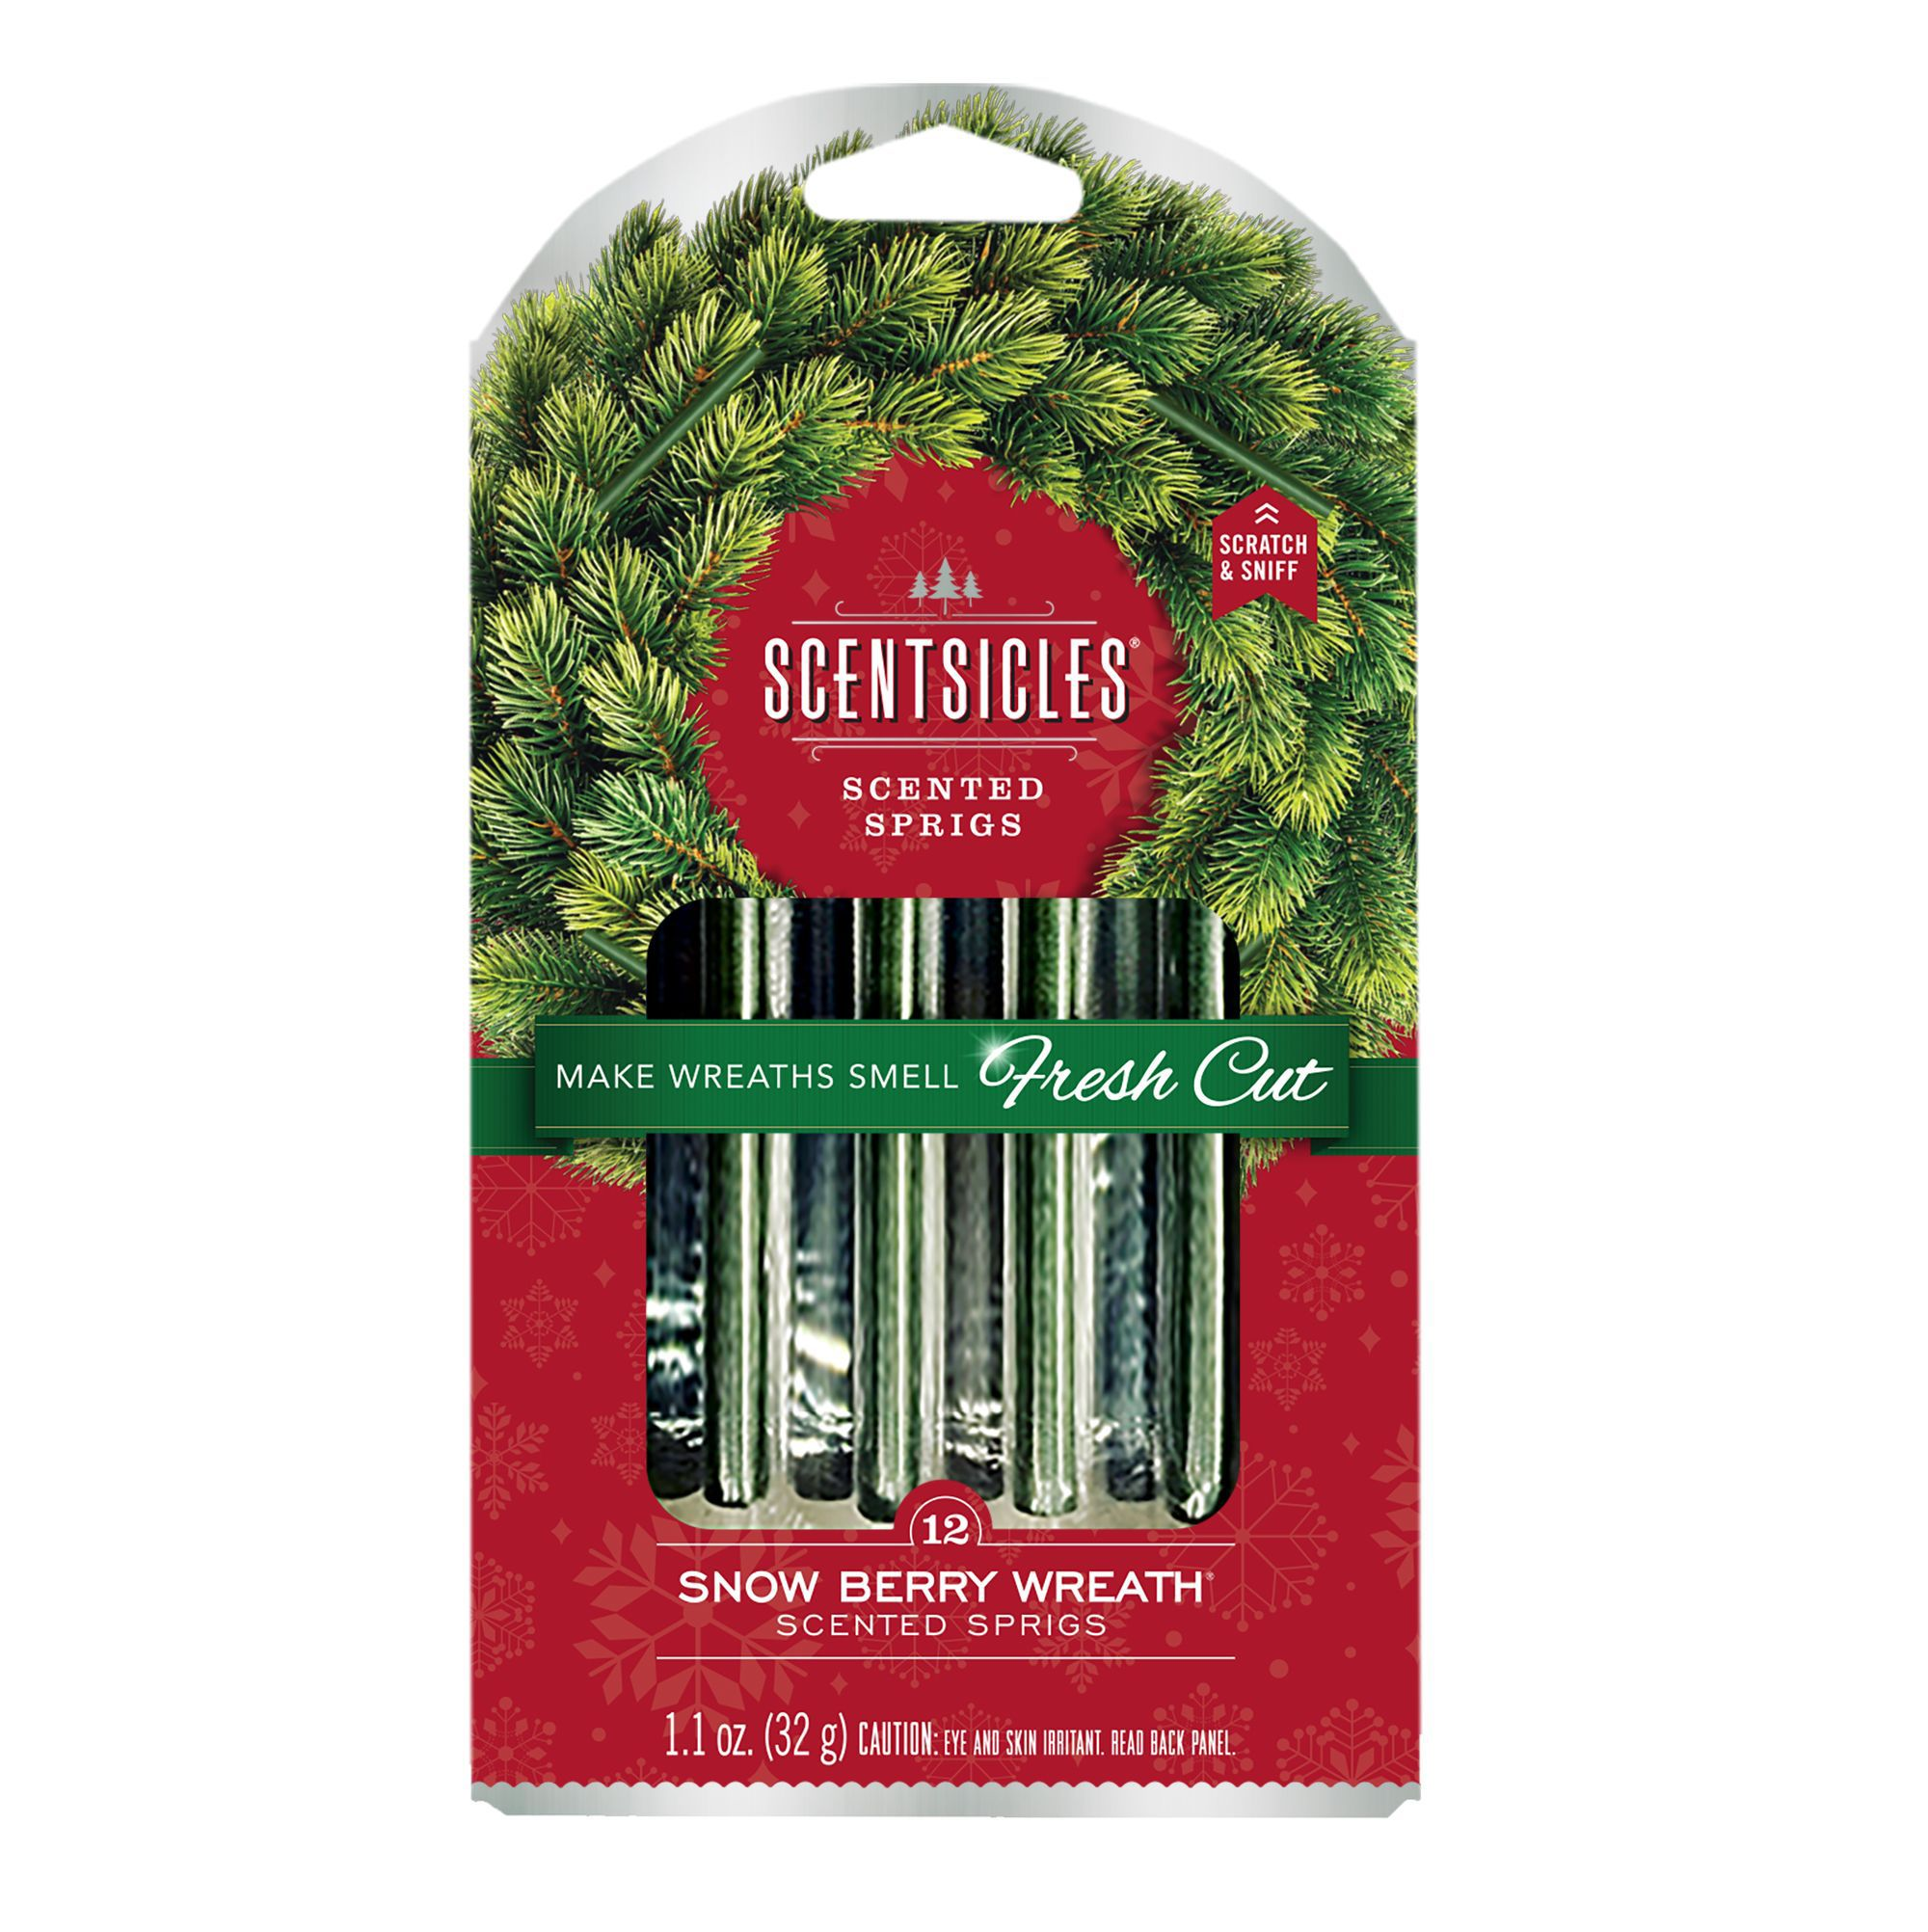 Snow Berry Scentsicles Wreath Sprigs Pack Of 12